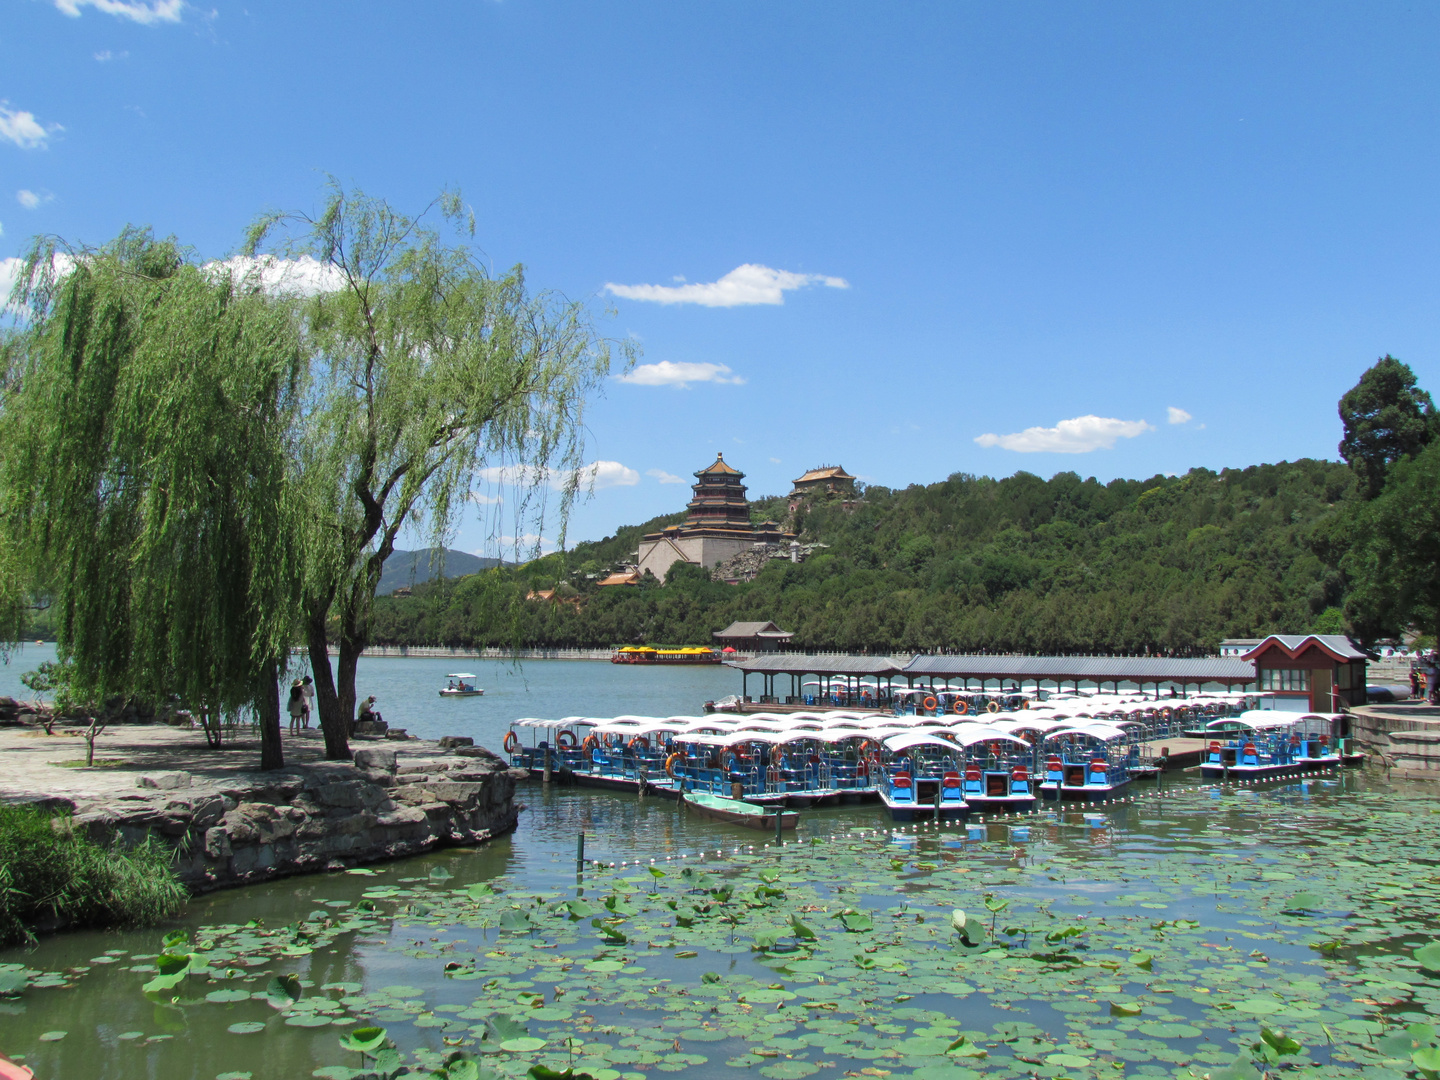 In Peking am See